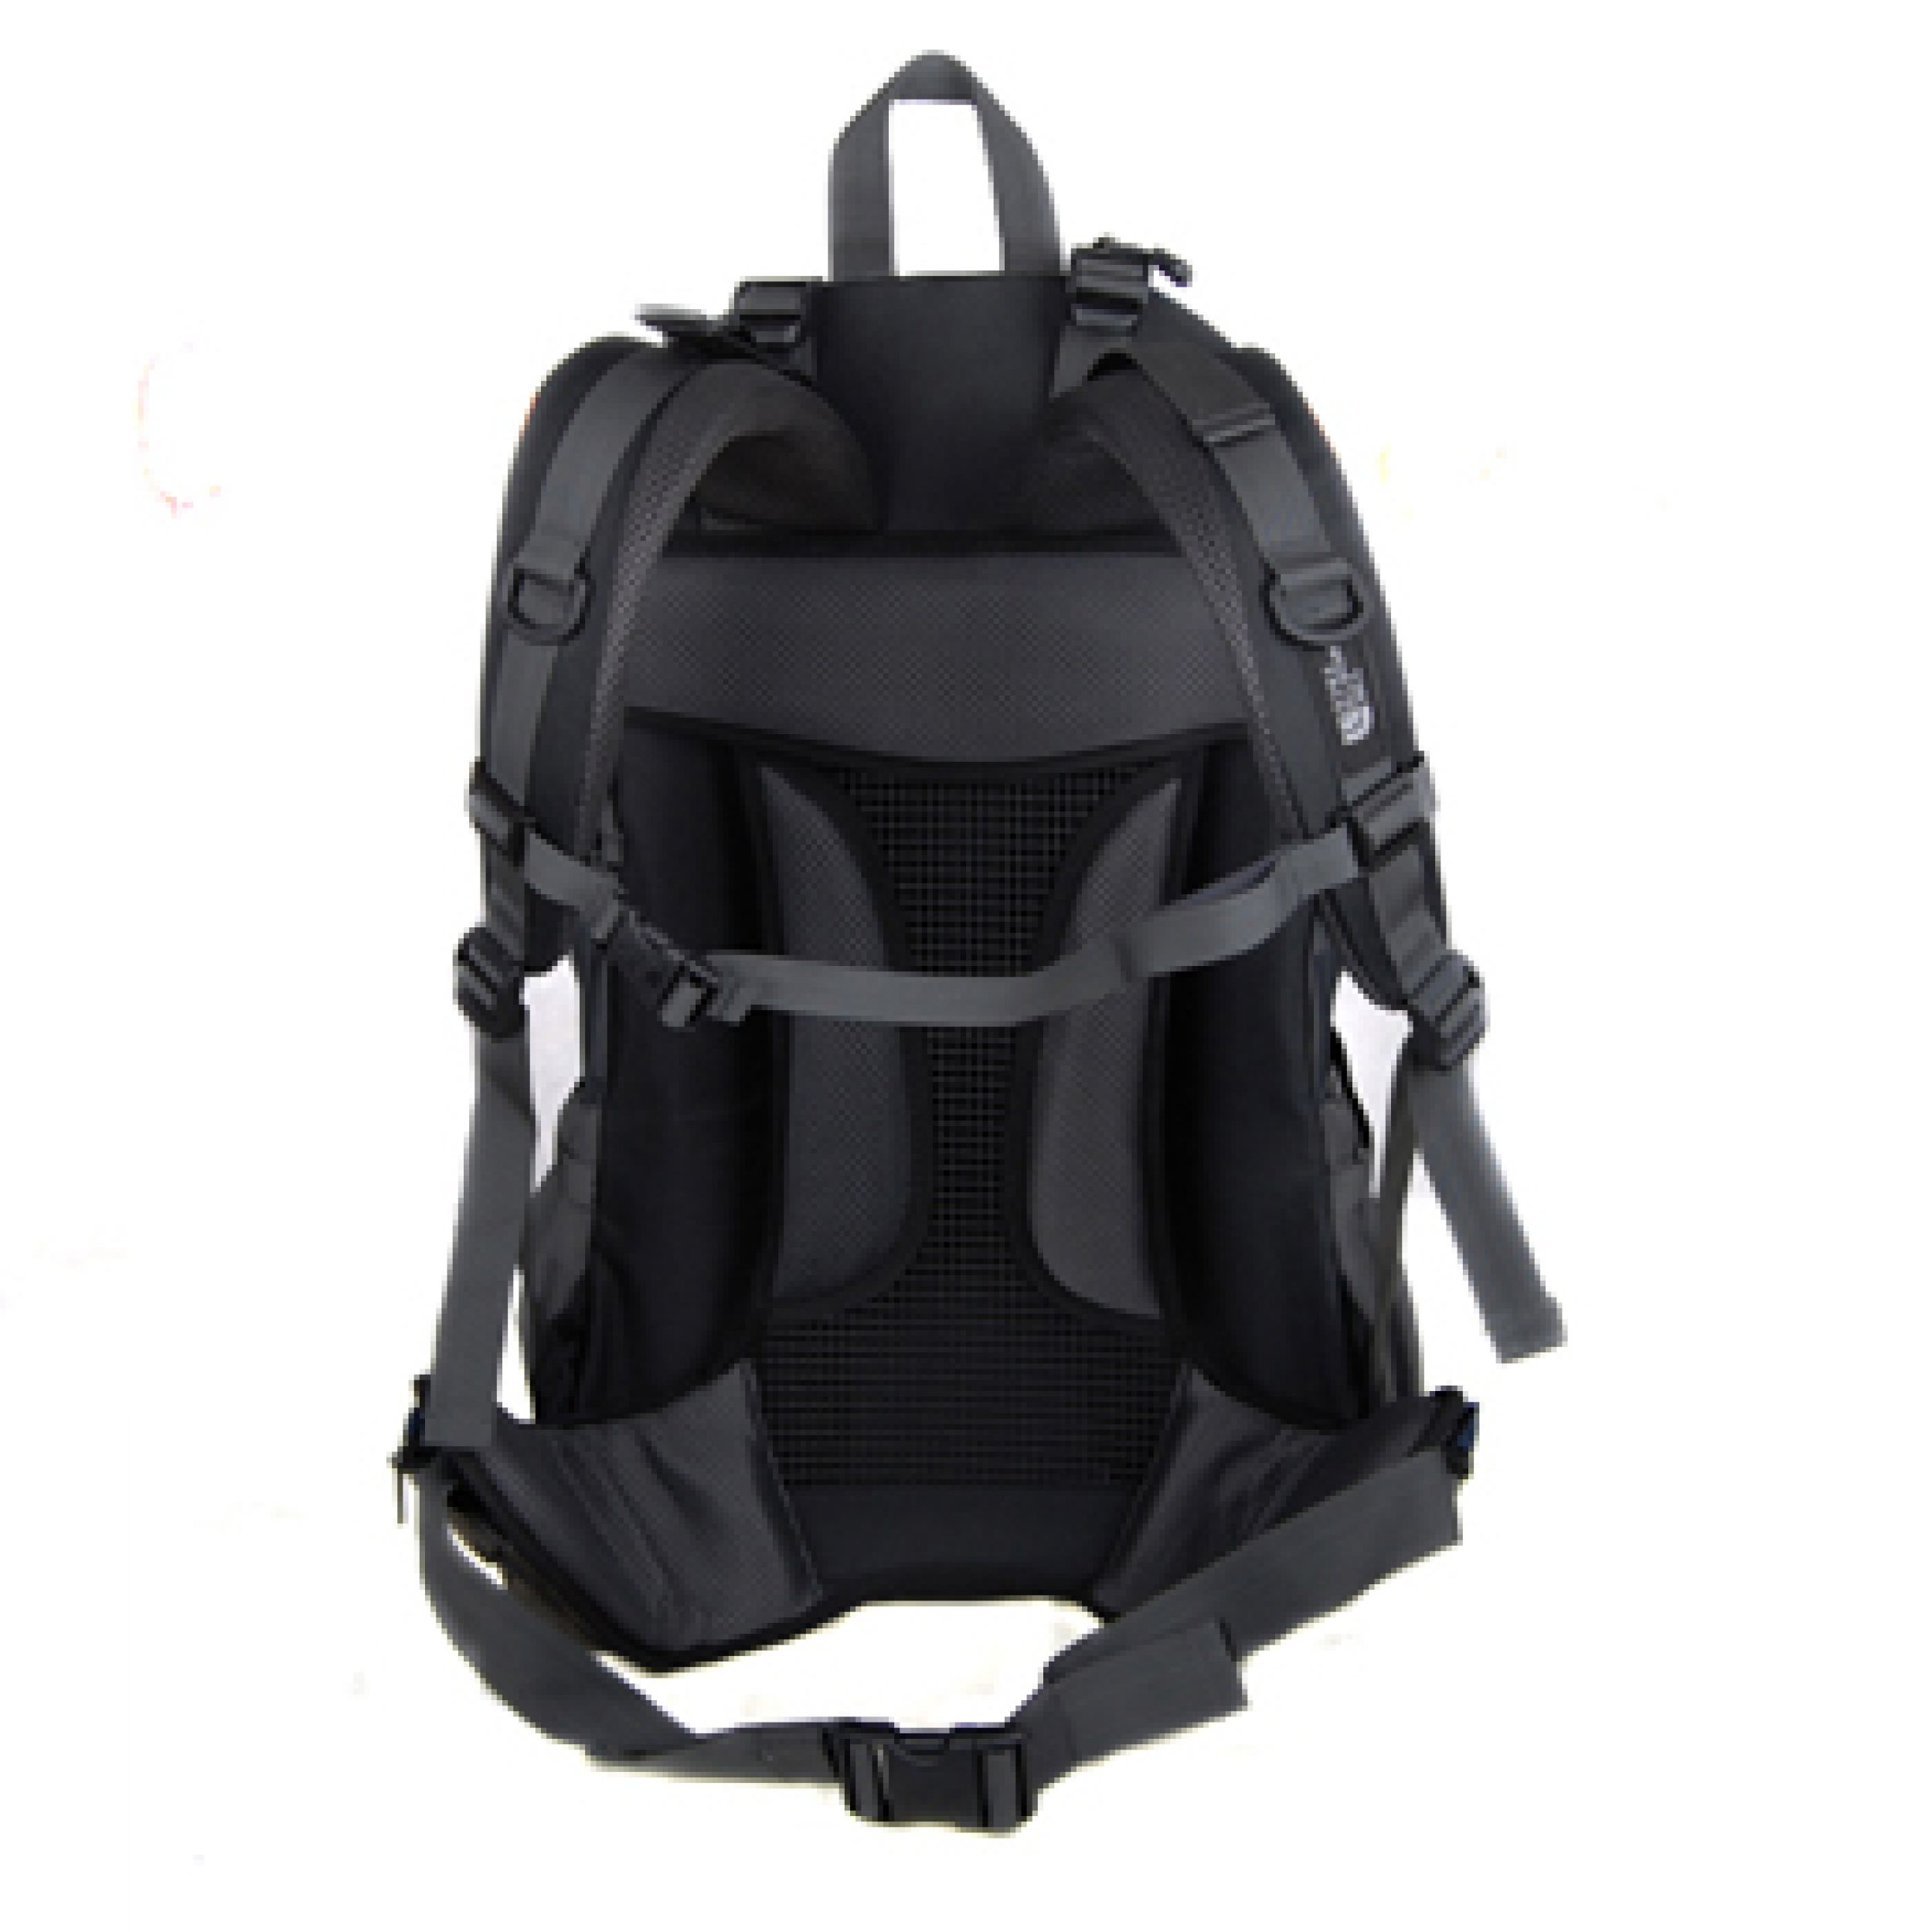 The_North_Face_Electron_40_Backpack__43_03_LRG.jpg